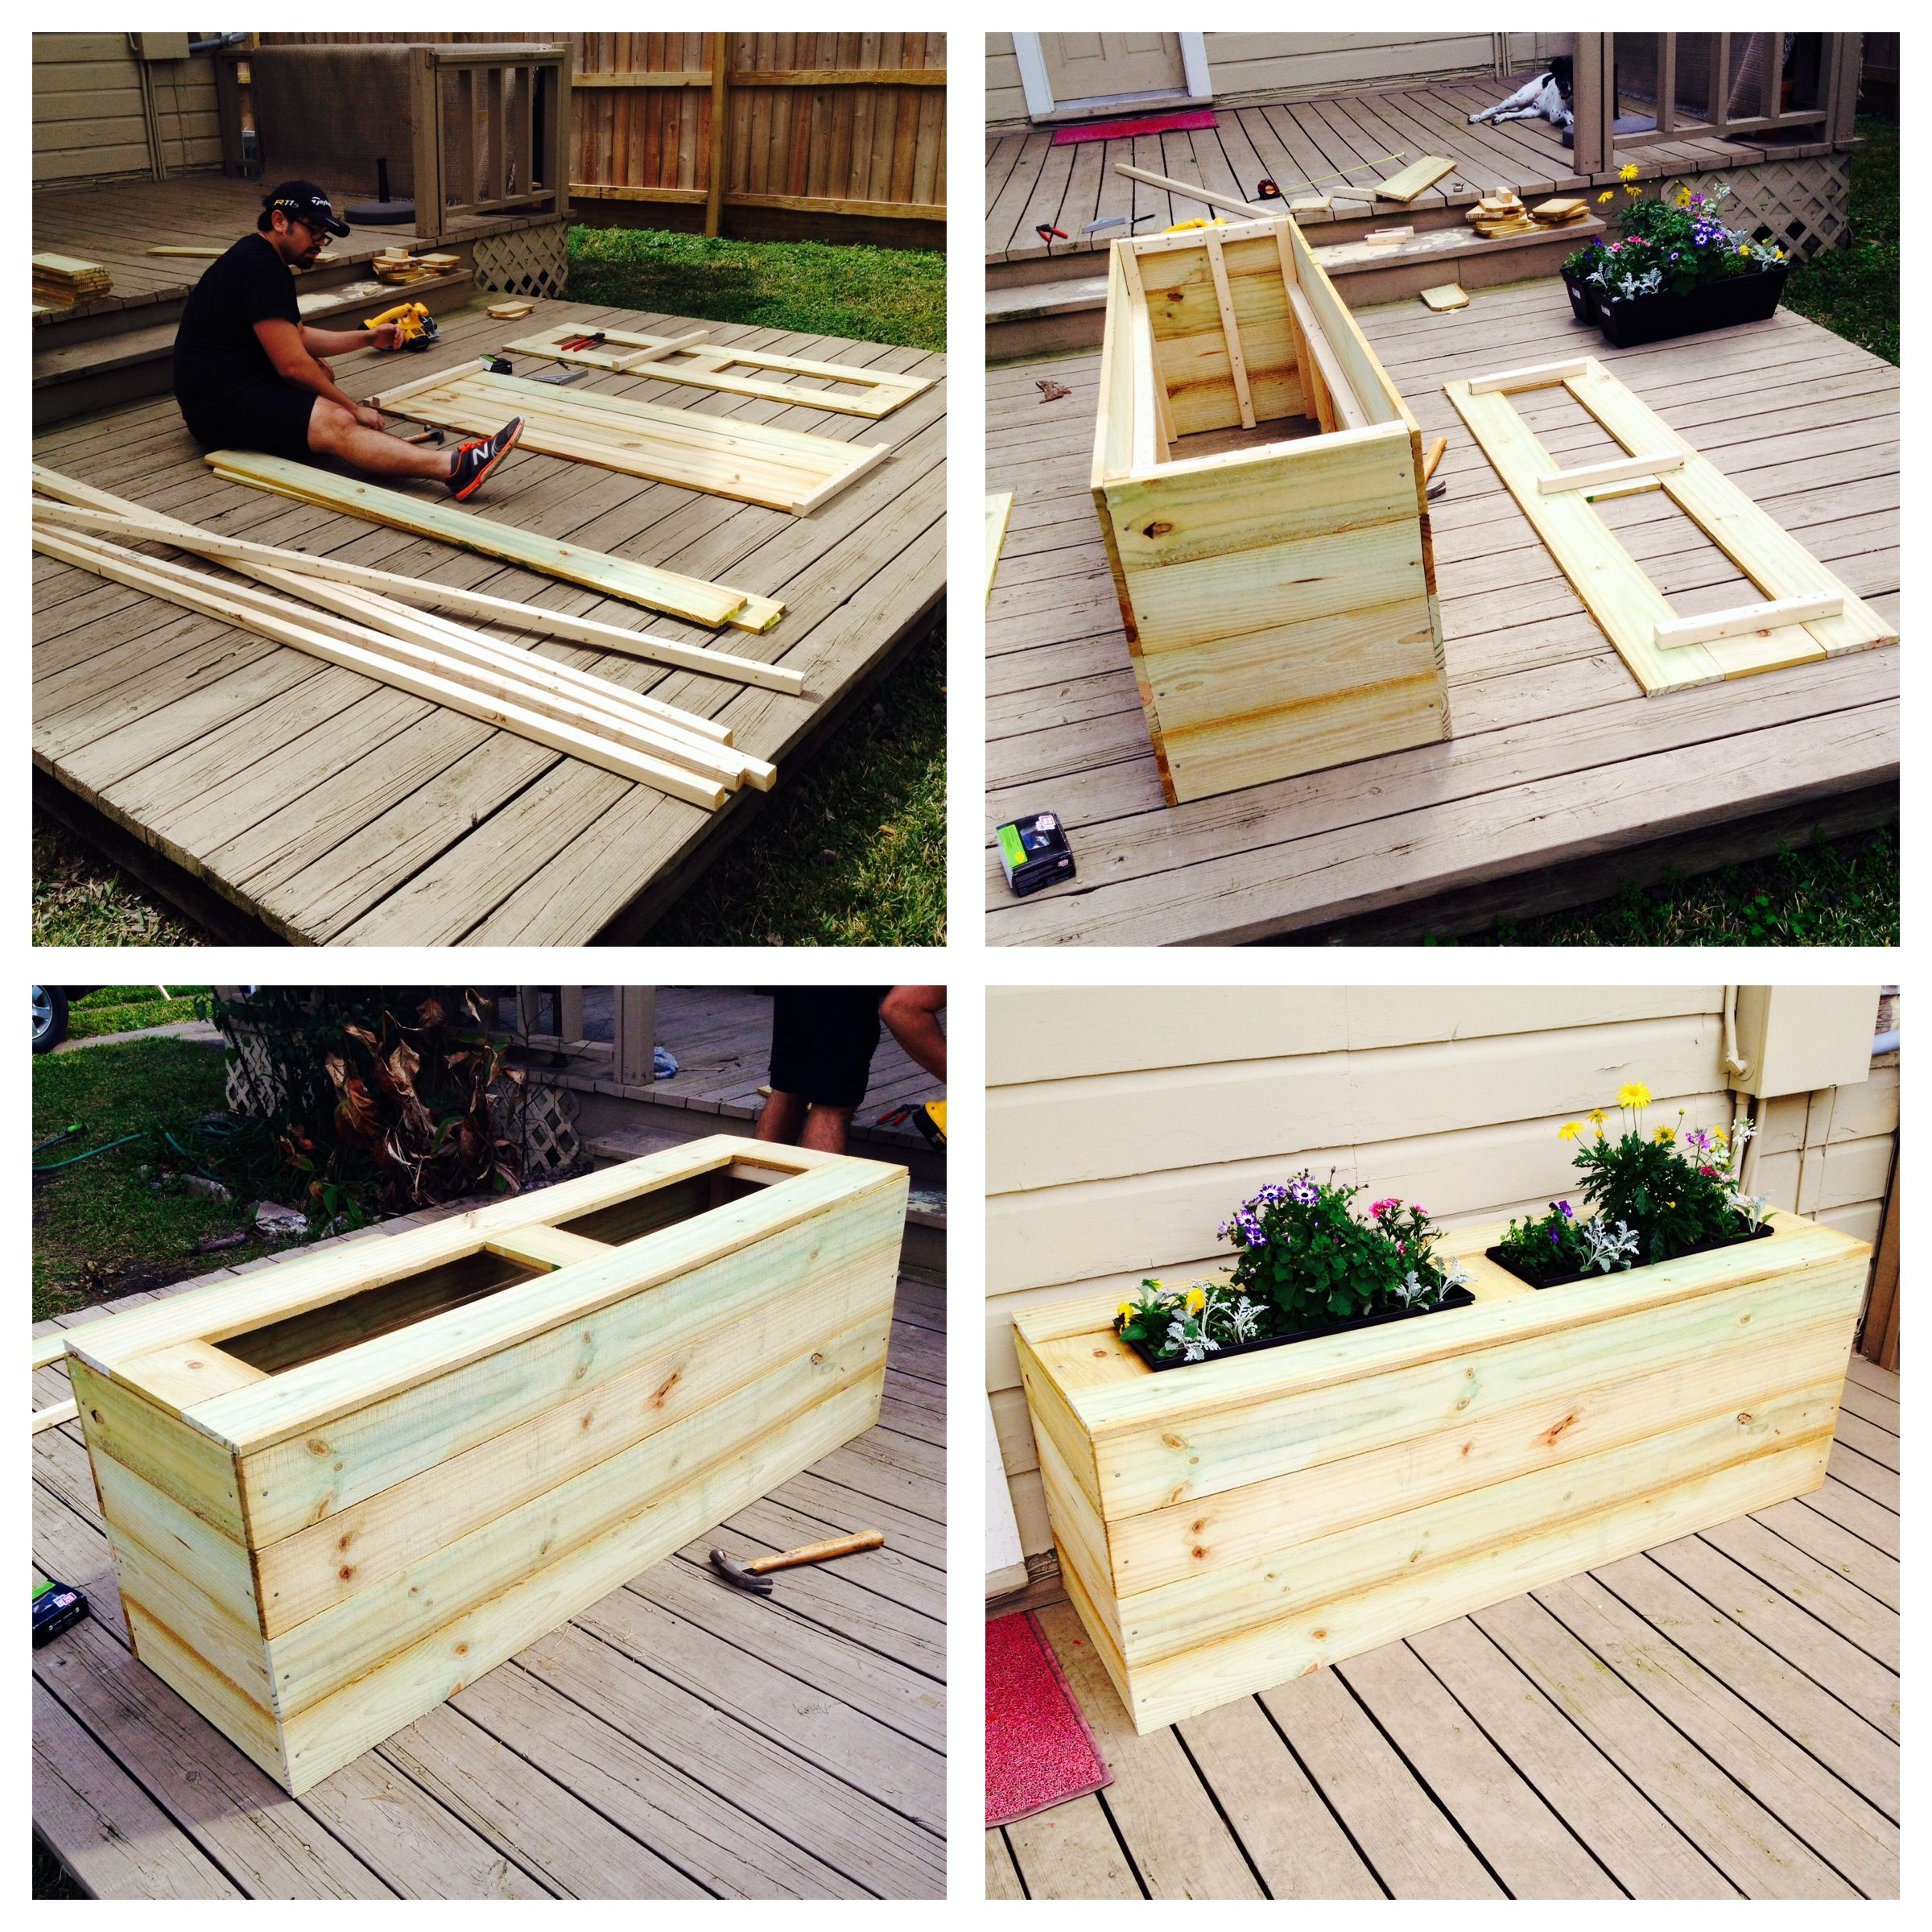 Simple Diy Rustic Planter Box Out Of Wood Fencing Rustic Planters Diy Planters Diy Wooden Planters